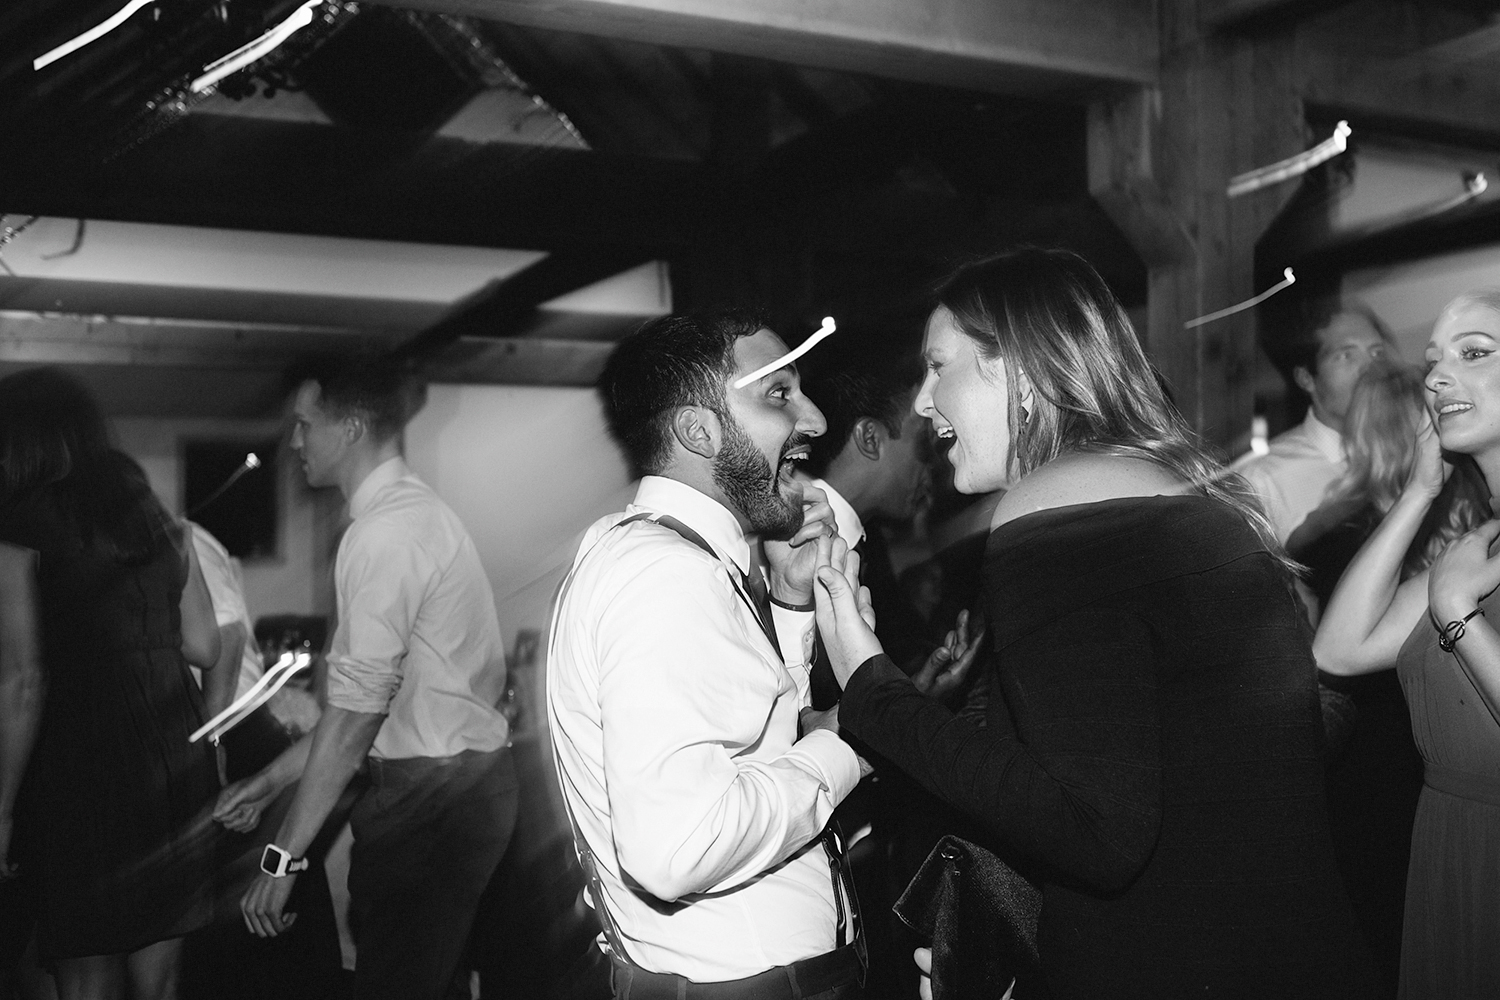 guests-dancing-partying-candid-moments-toronto's-best-analog-documentary-wedding-photographers-candid-photography-london-ontario-wedding-inspiration.jpg